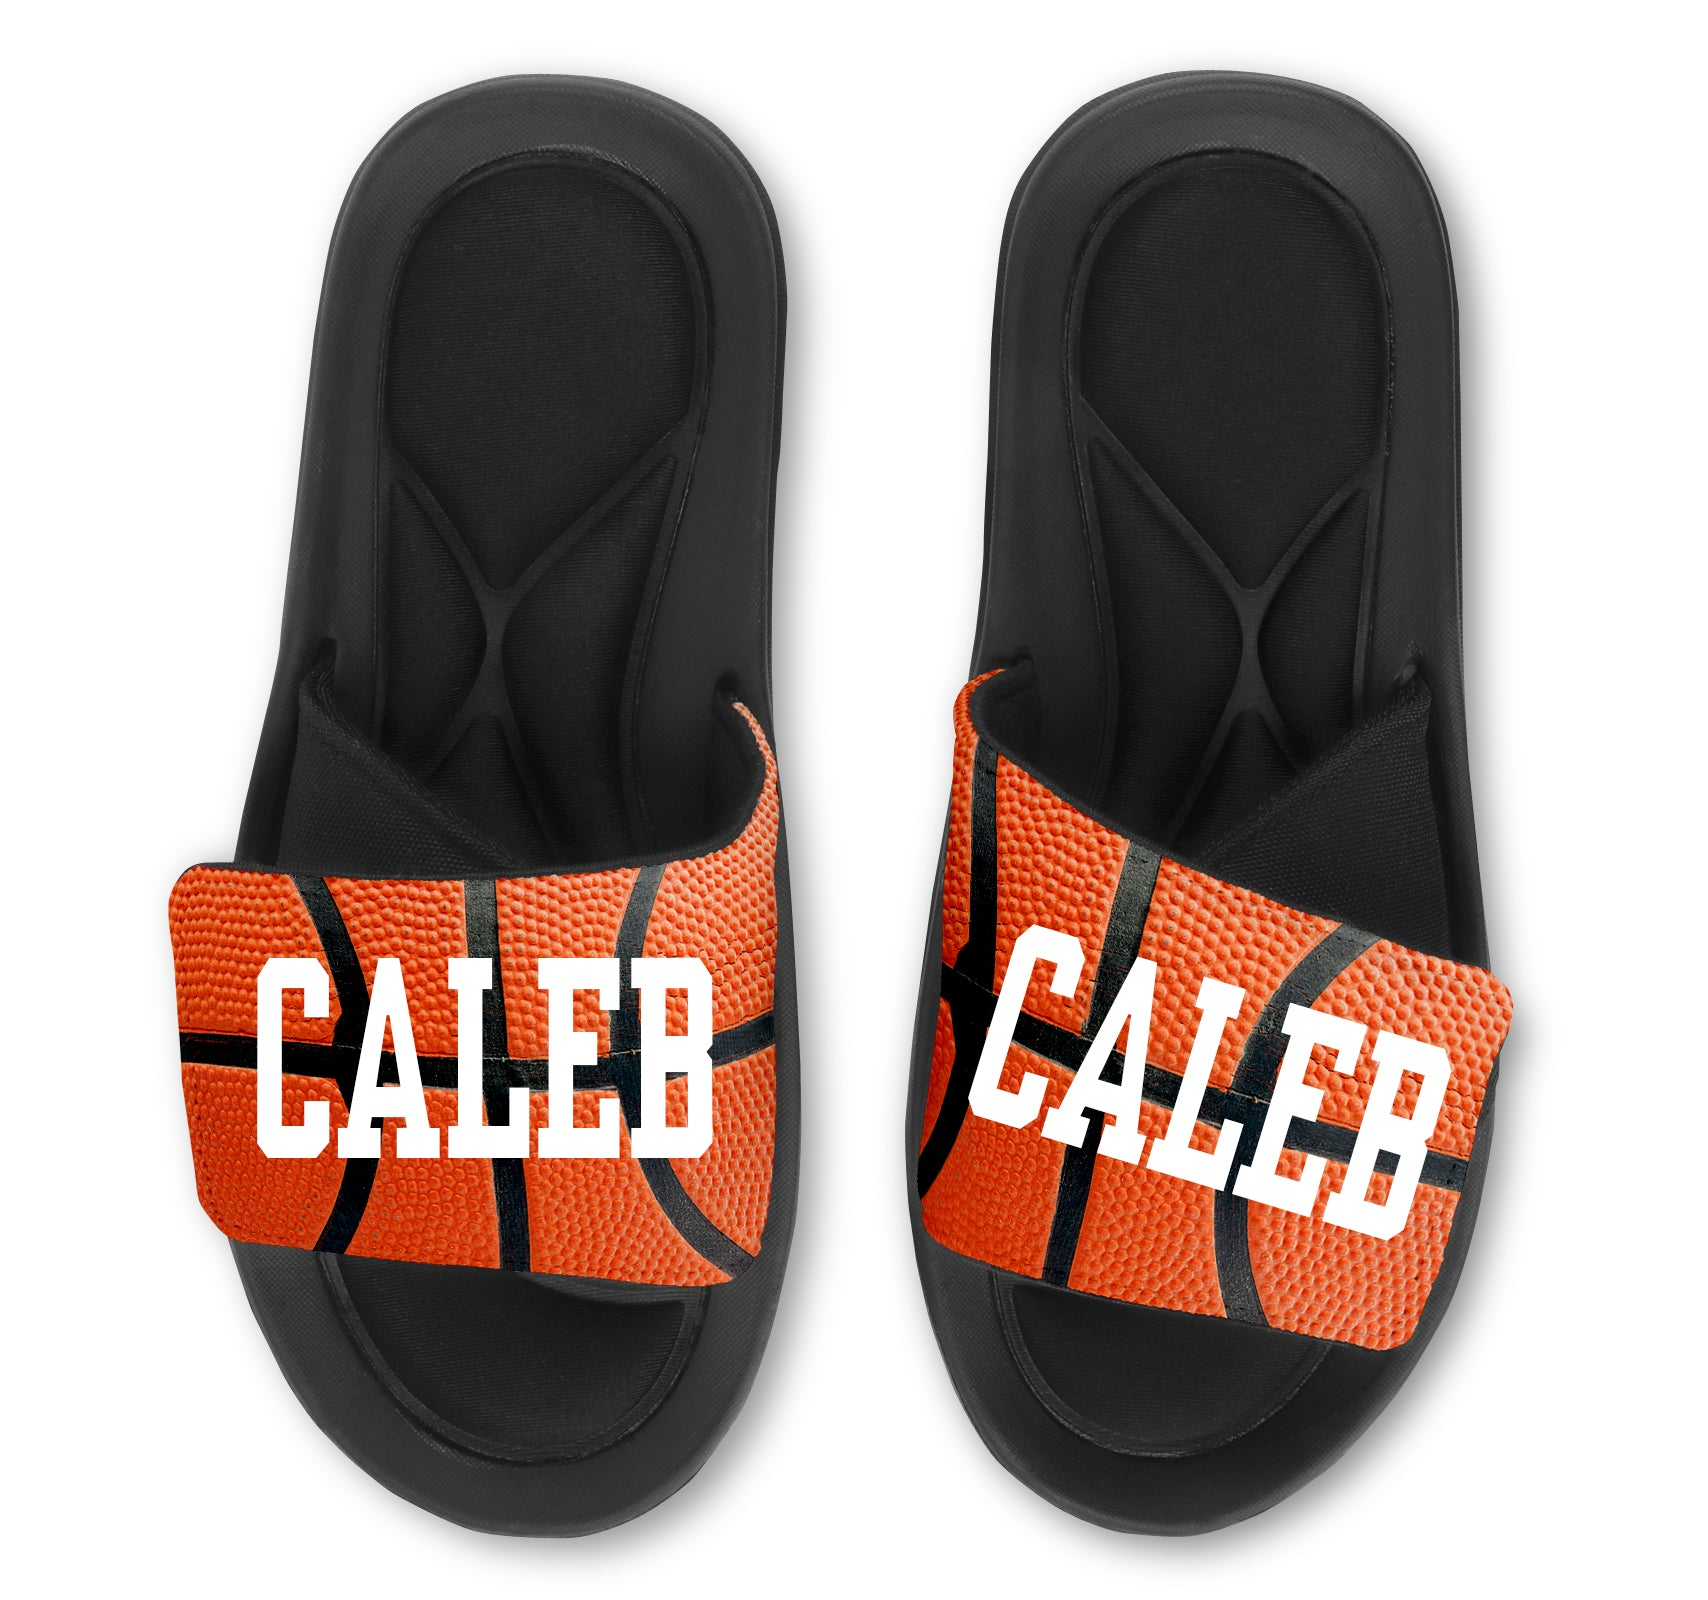 BASKETBALL Slides - Customize with Your Name and/or Number